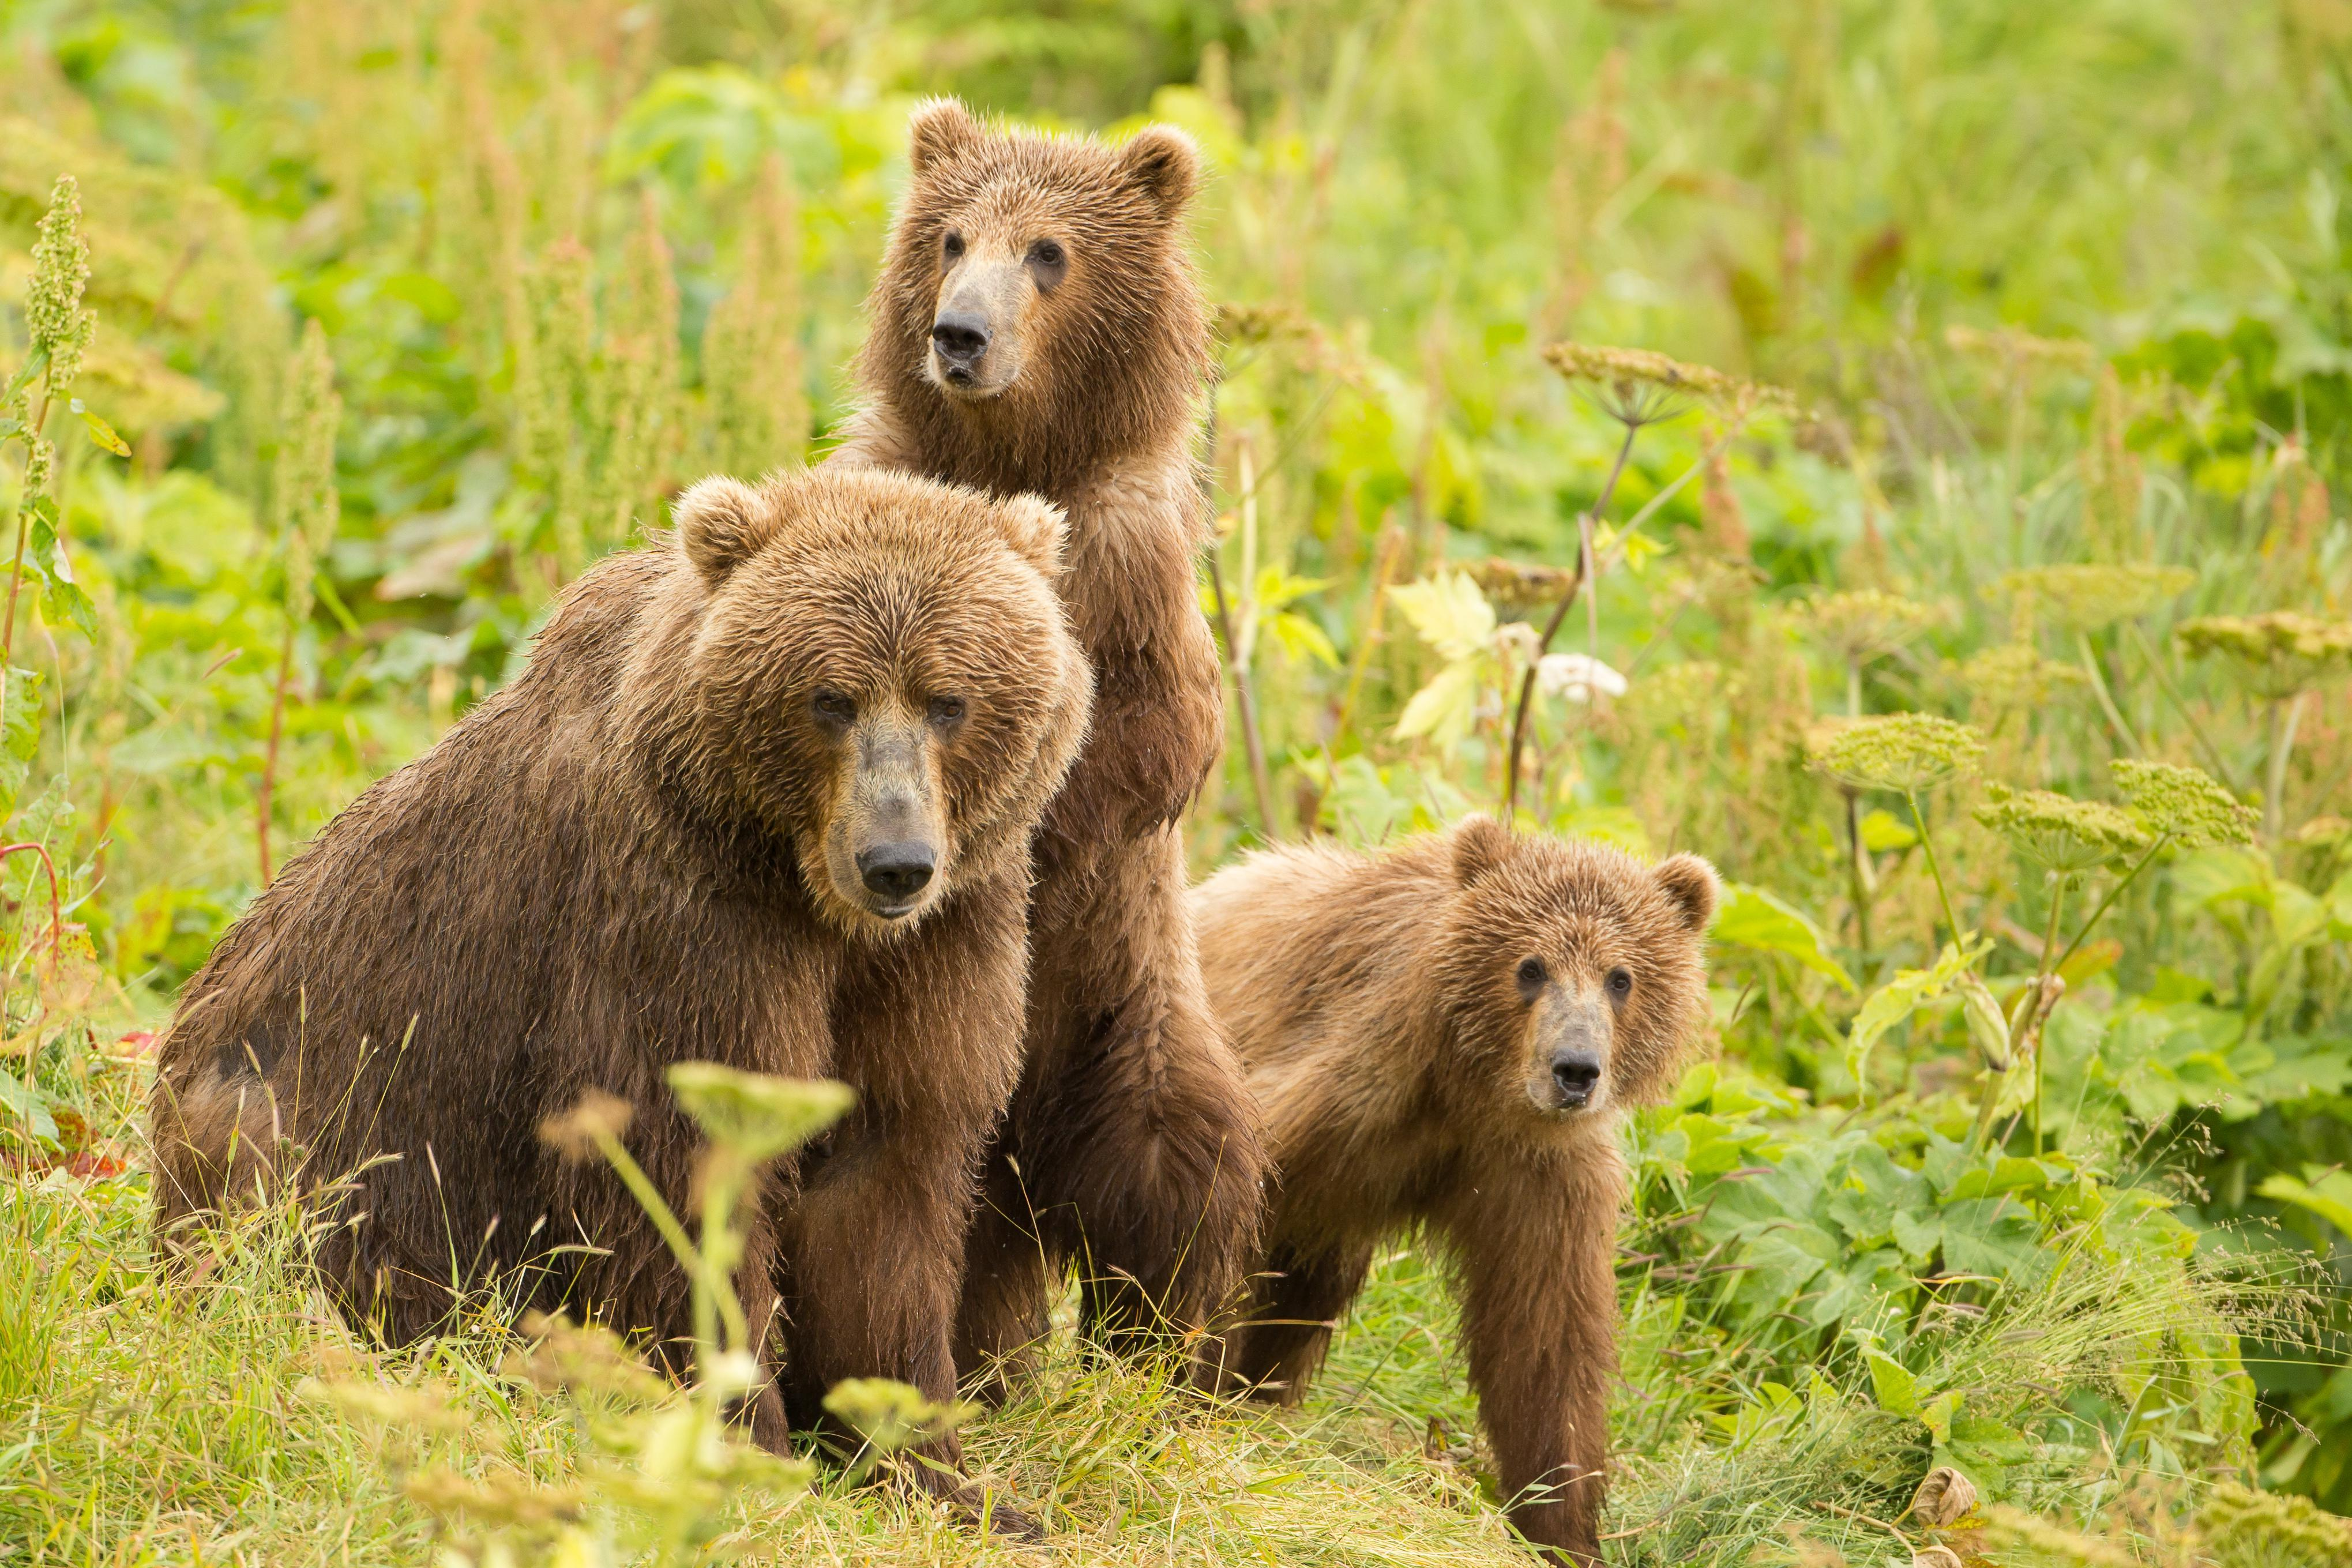 As grizzly bears expand their ranges throughout Montana, people say there could be lessons learned for Washington's North Cascades.